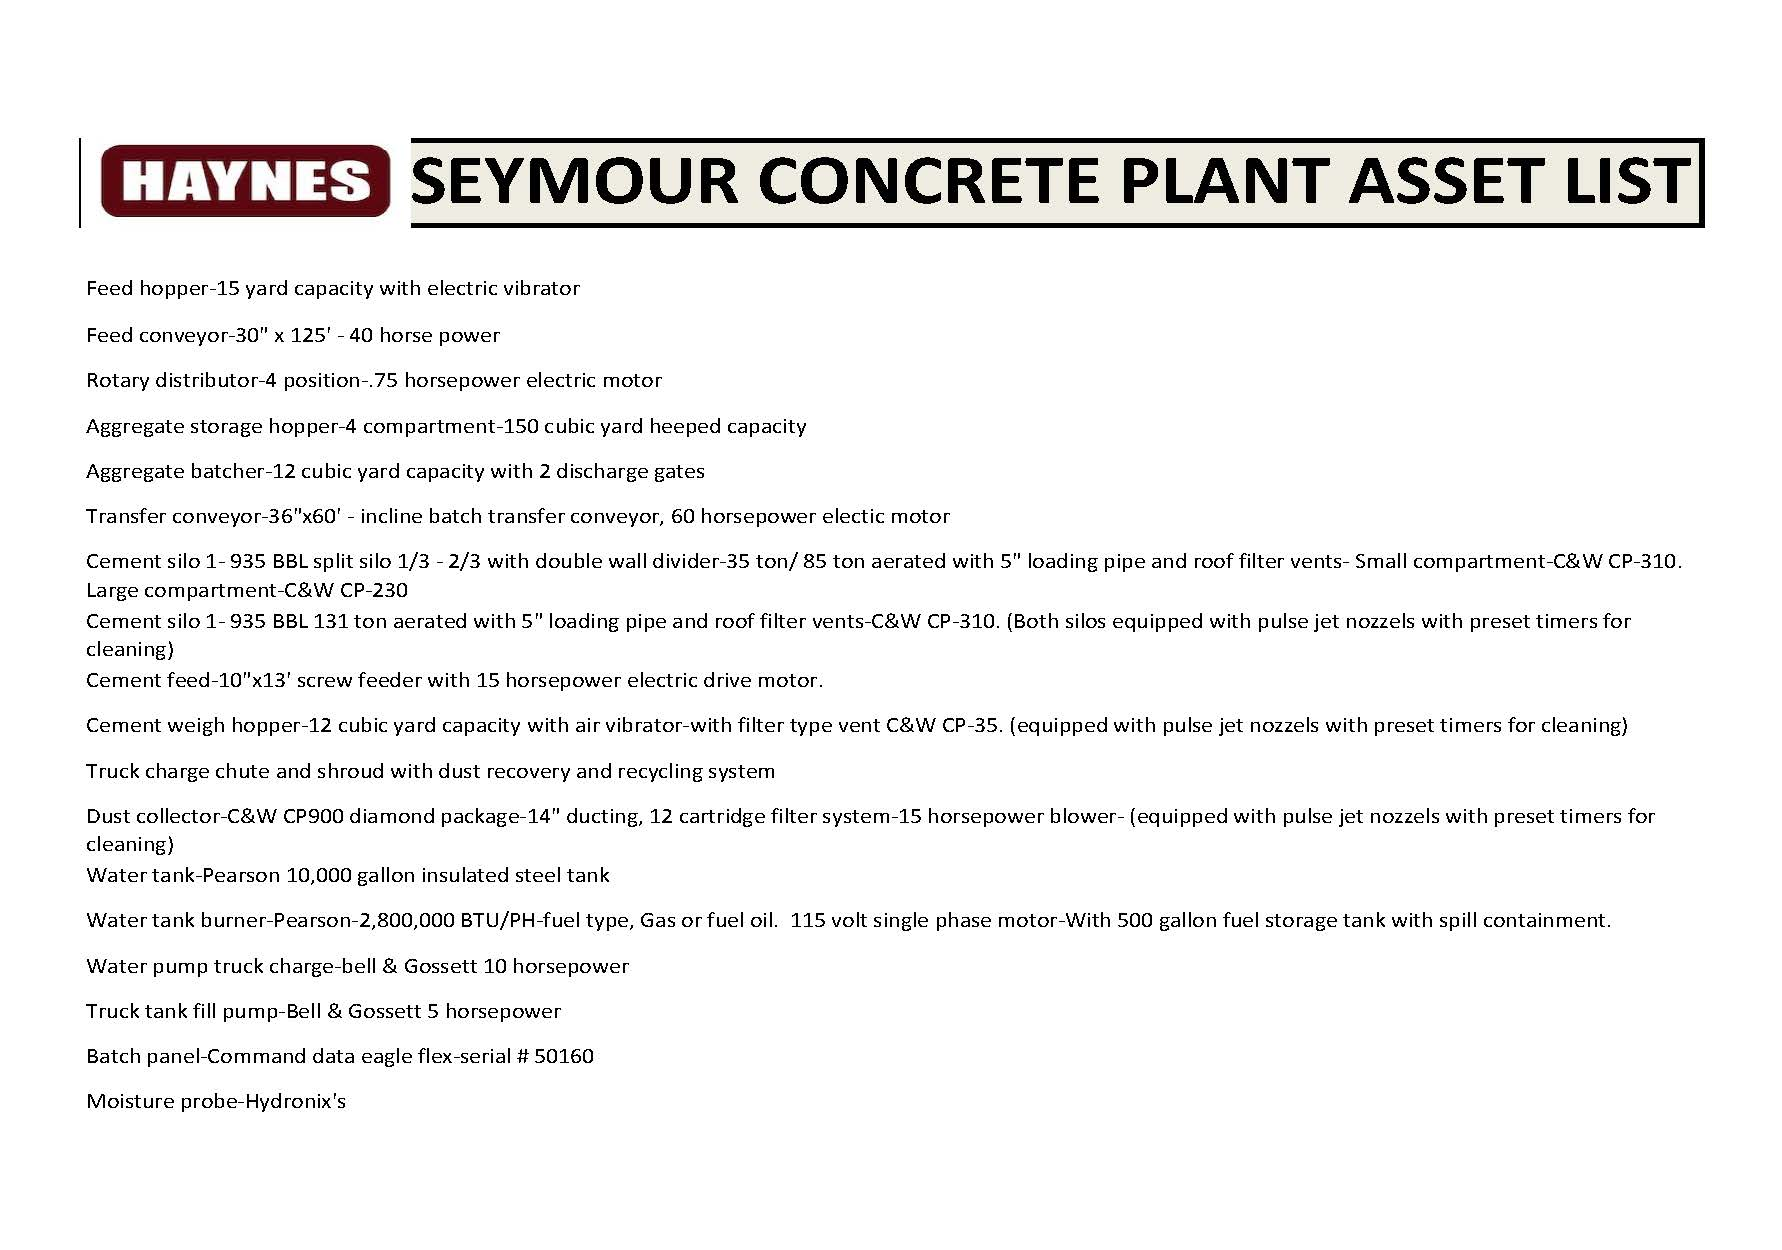 Concrete Plant Asset List (jpeg)